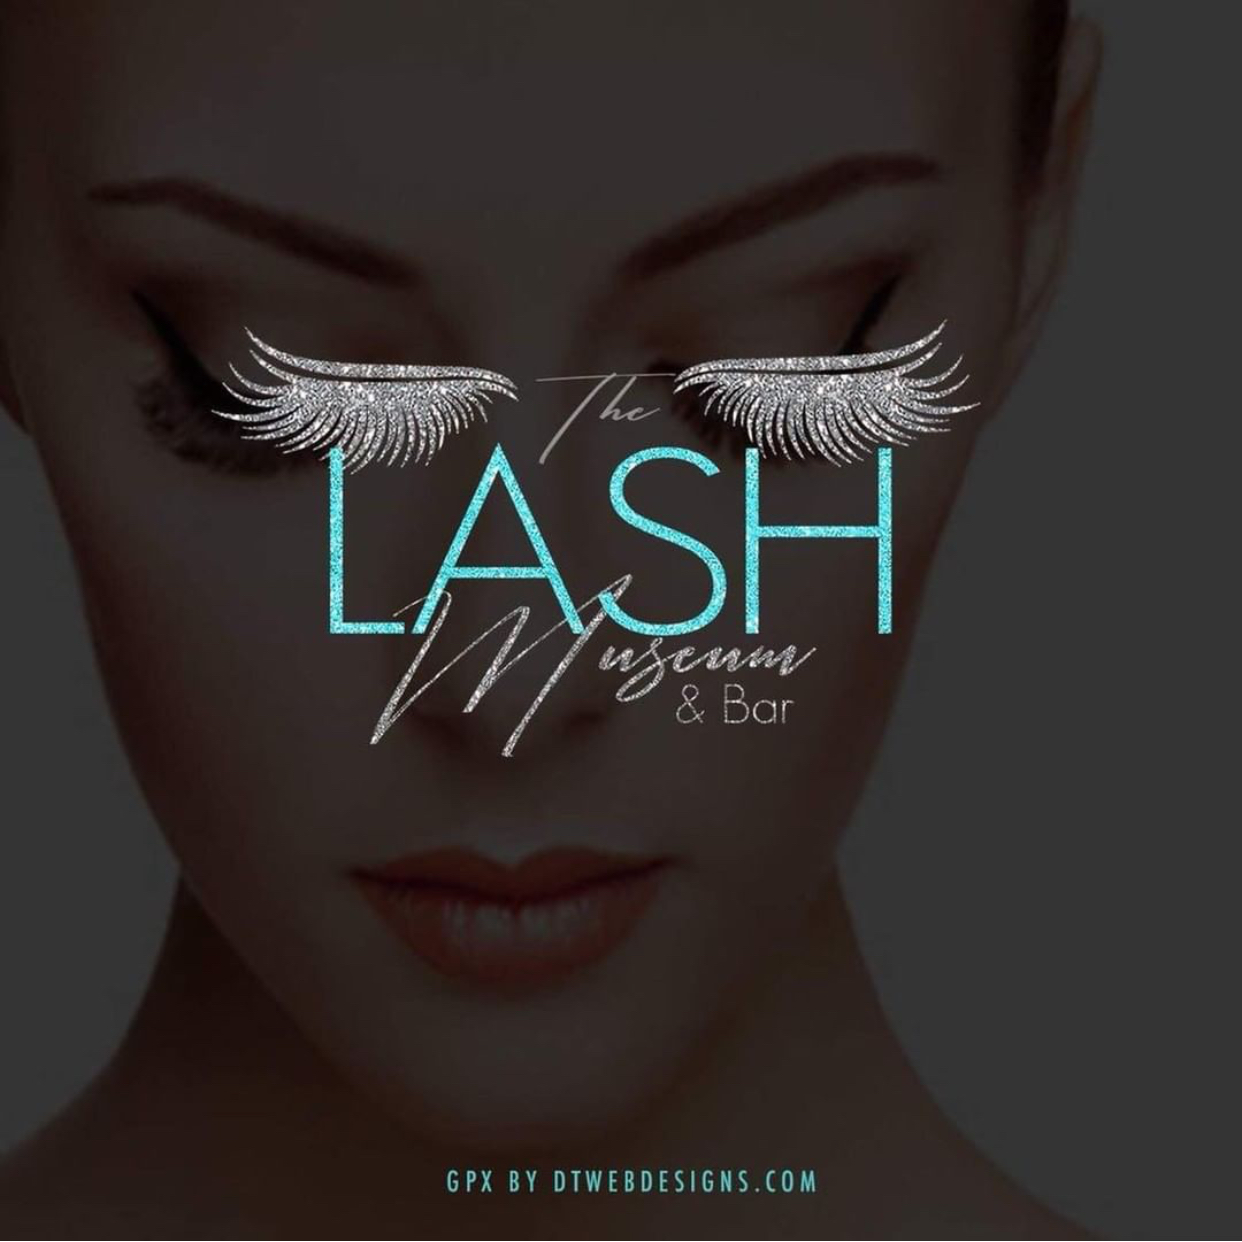 THE BEST LASHES